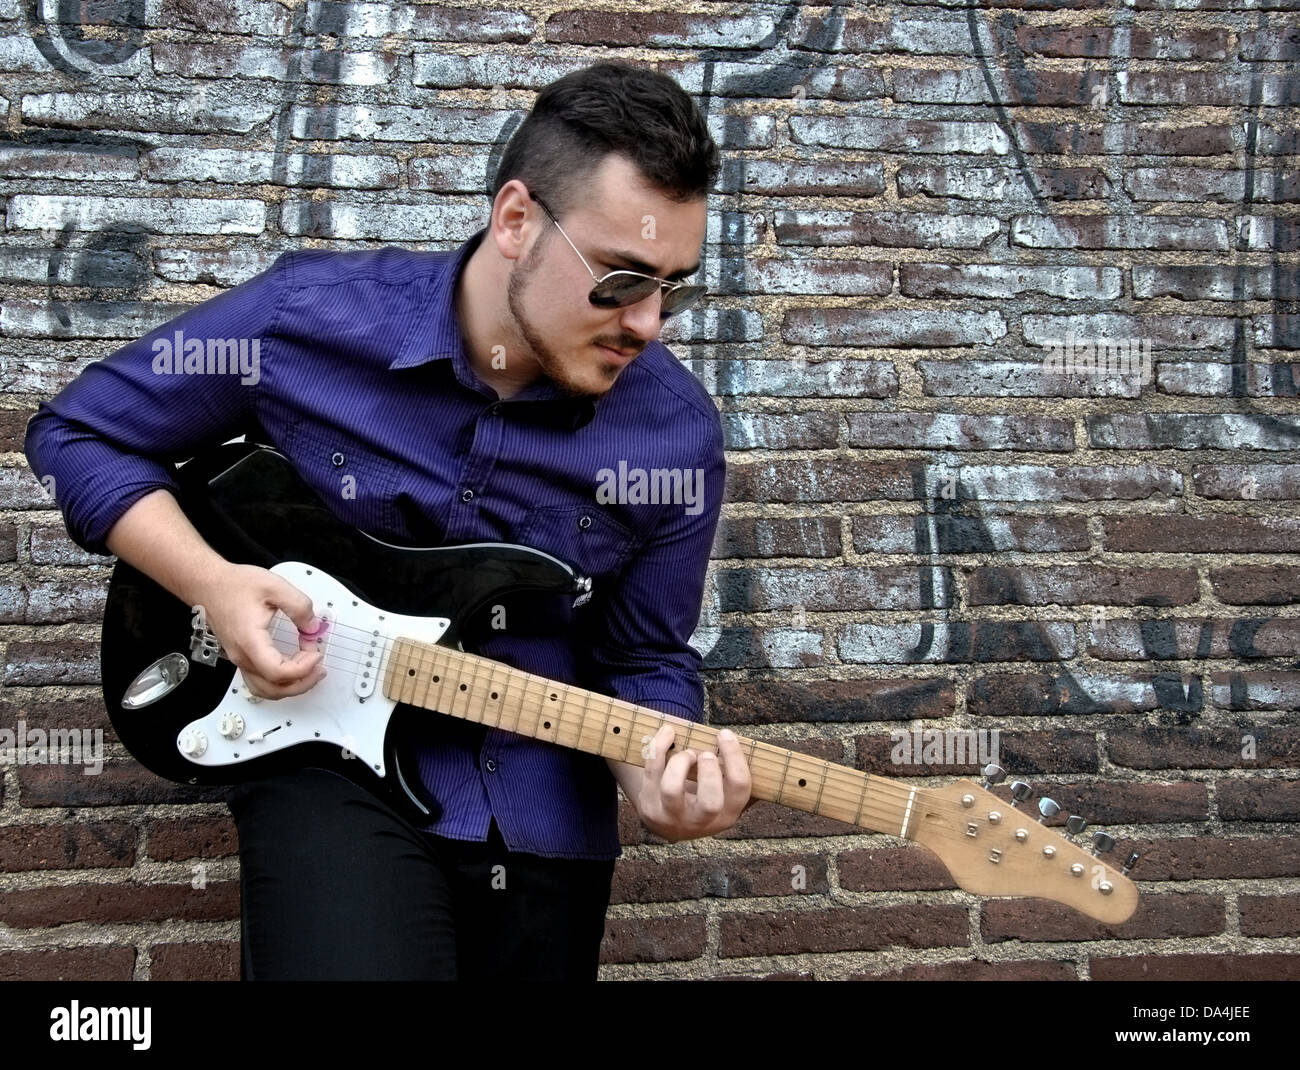 musician posing with his guitar in a wall of graffiti - Stock Image